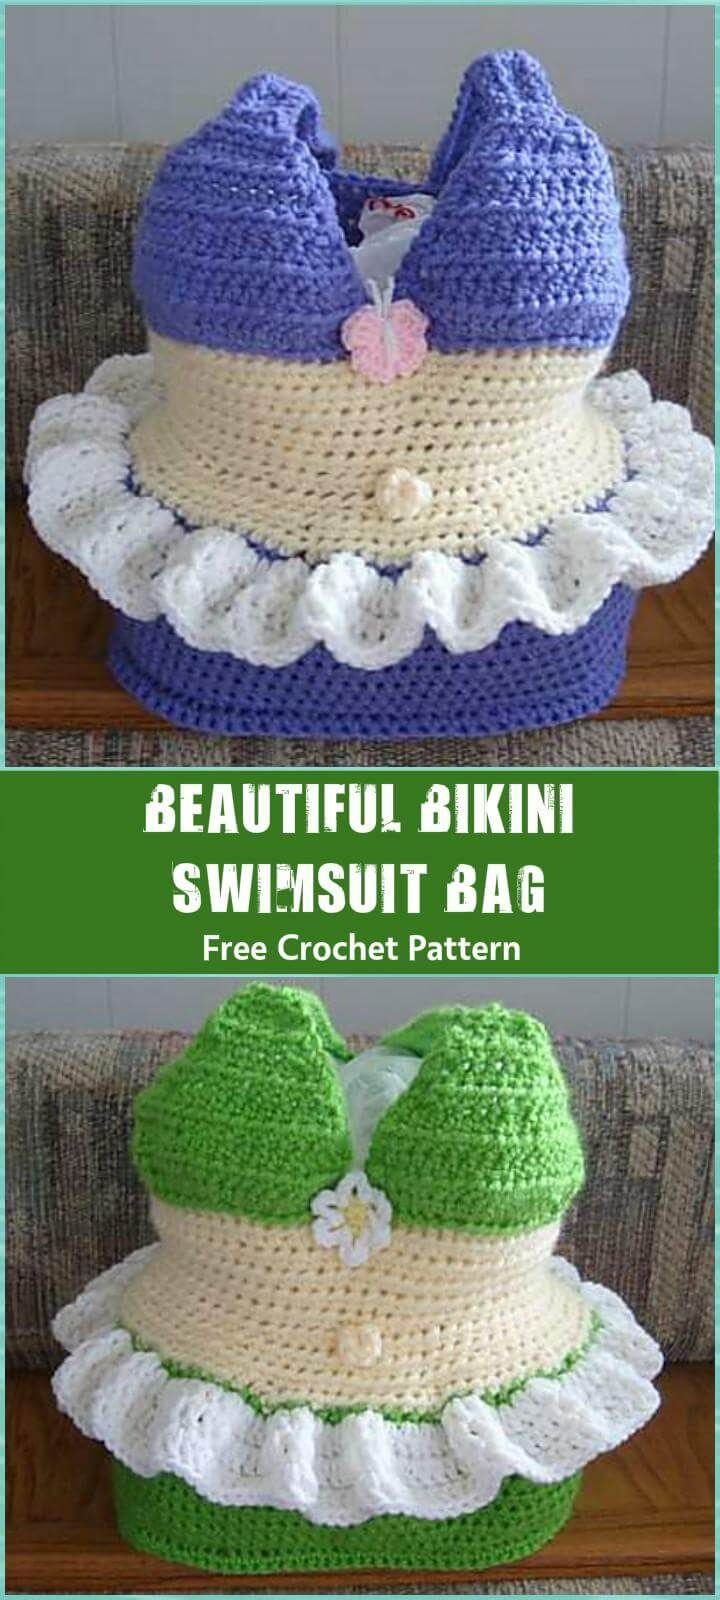 110+ Free Crochet Patterns for Summer and Spring - Page 5 of 12